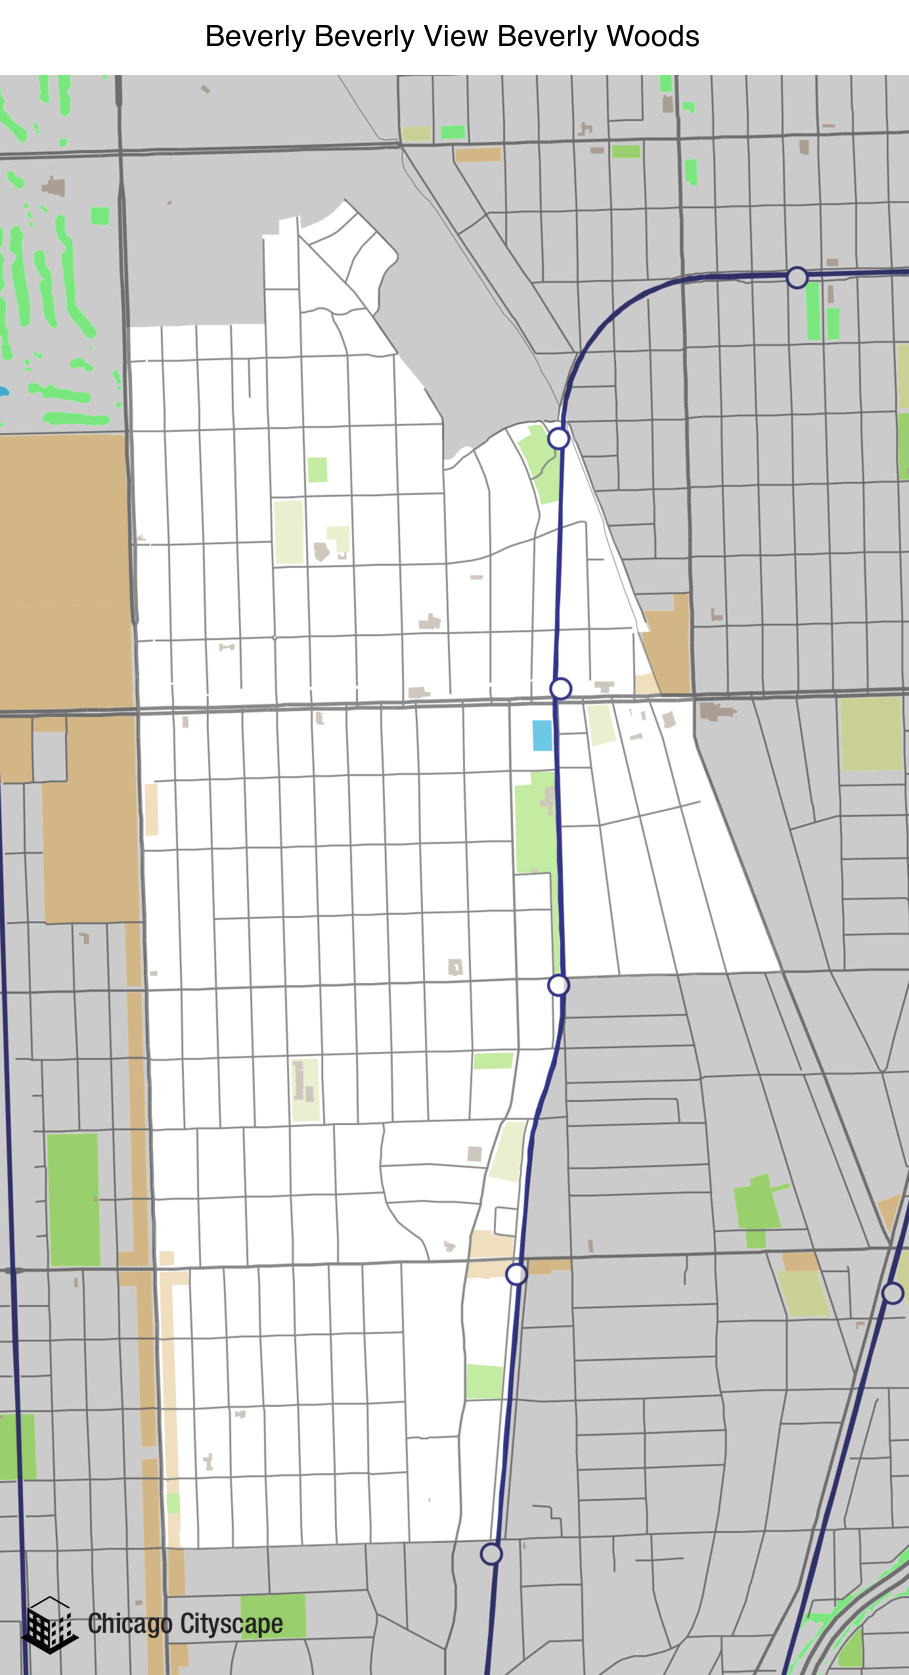 Chicago Cityscape   Map of building projects, properties, and